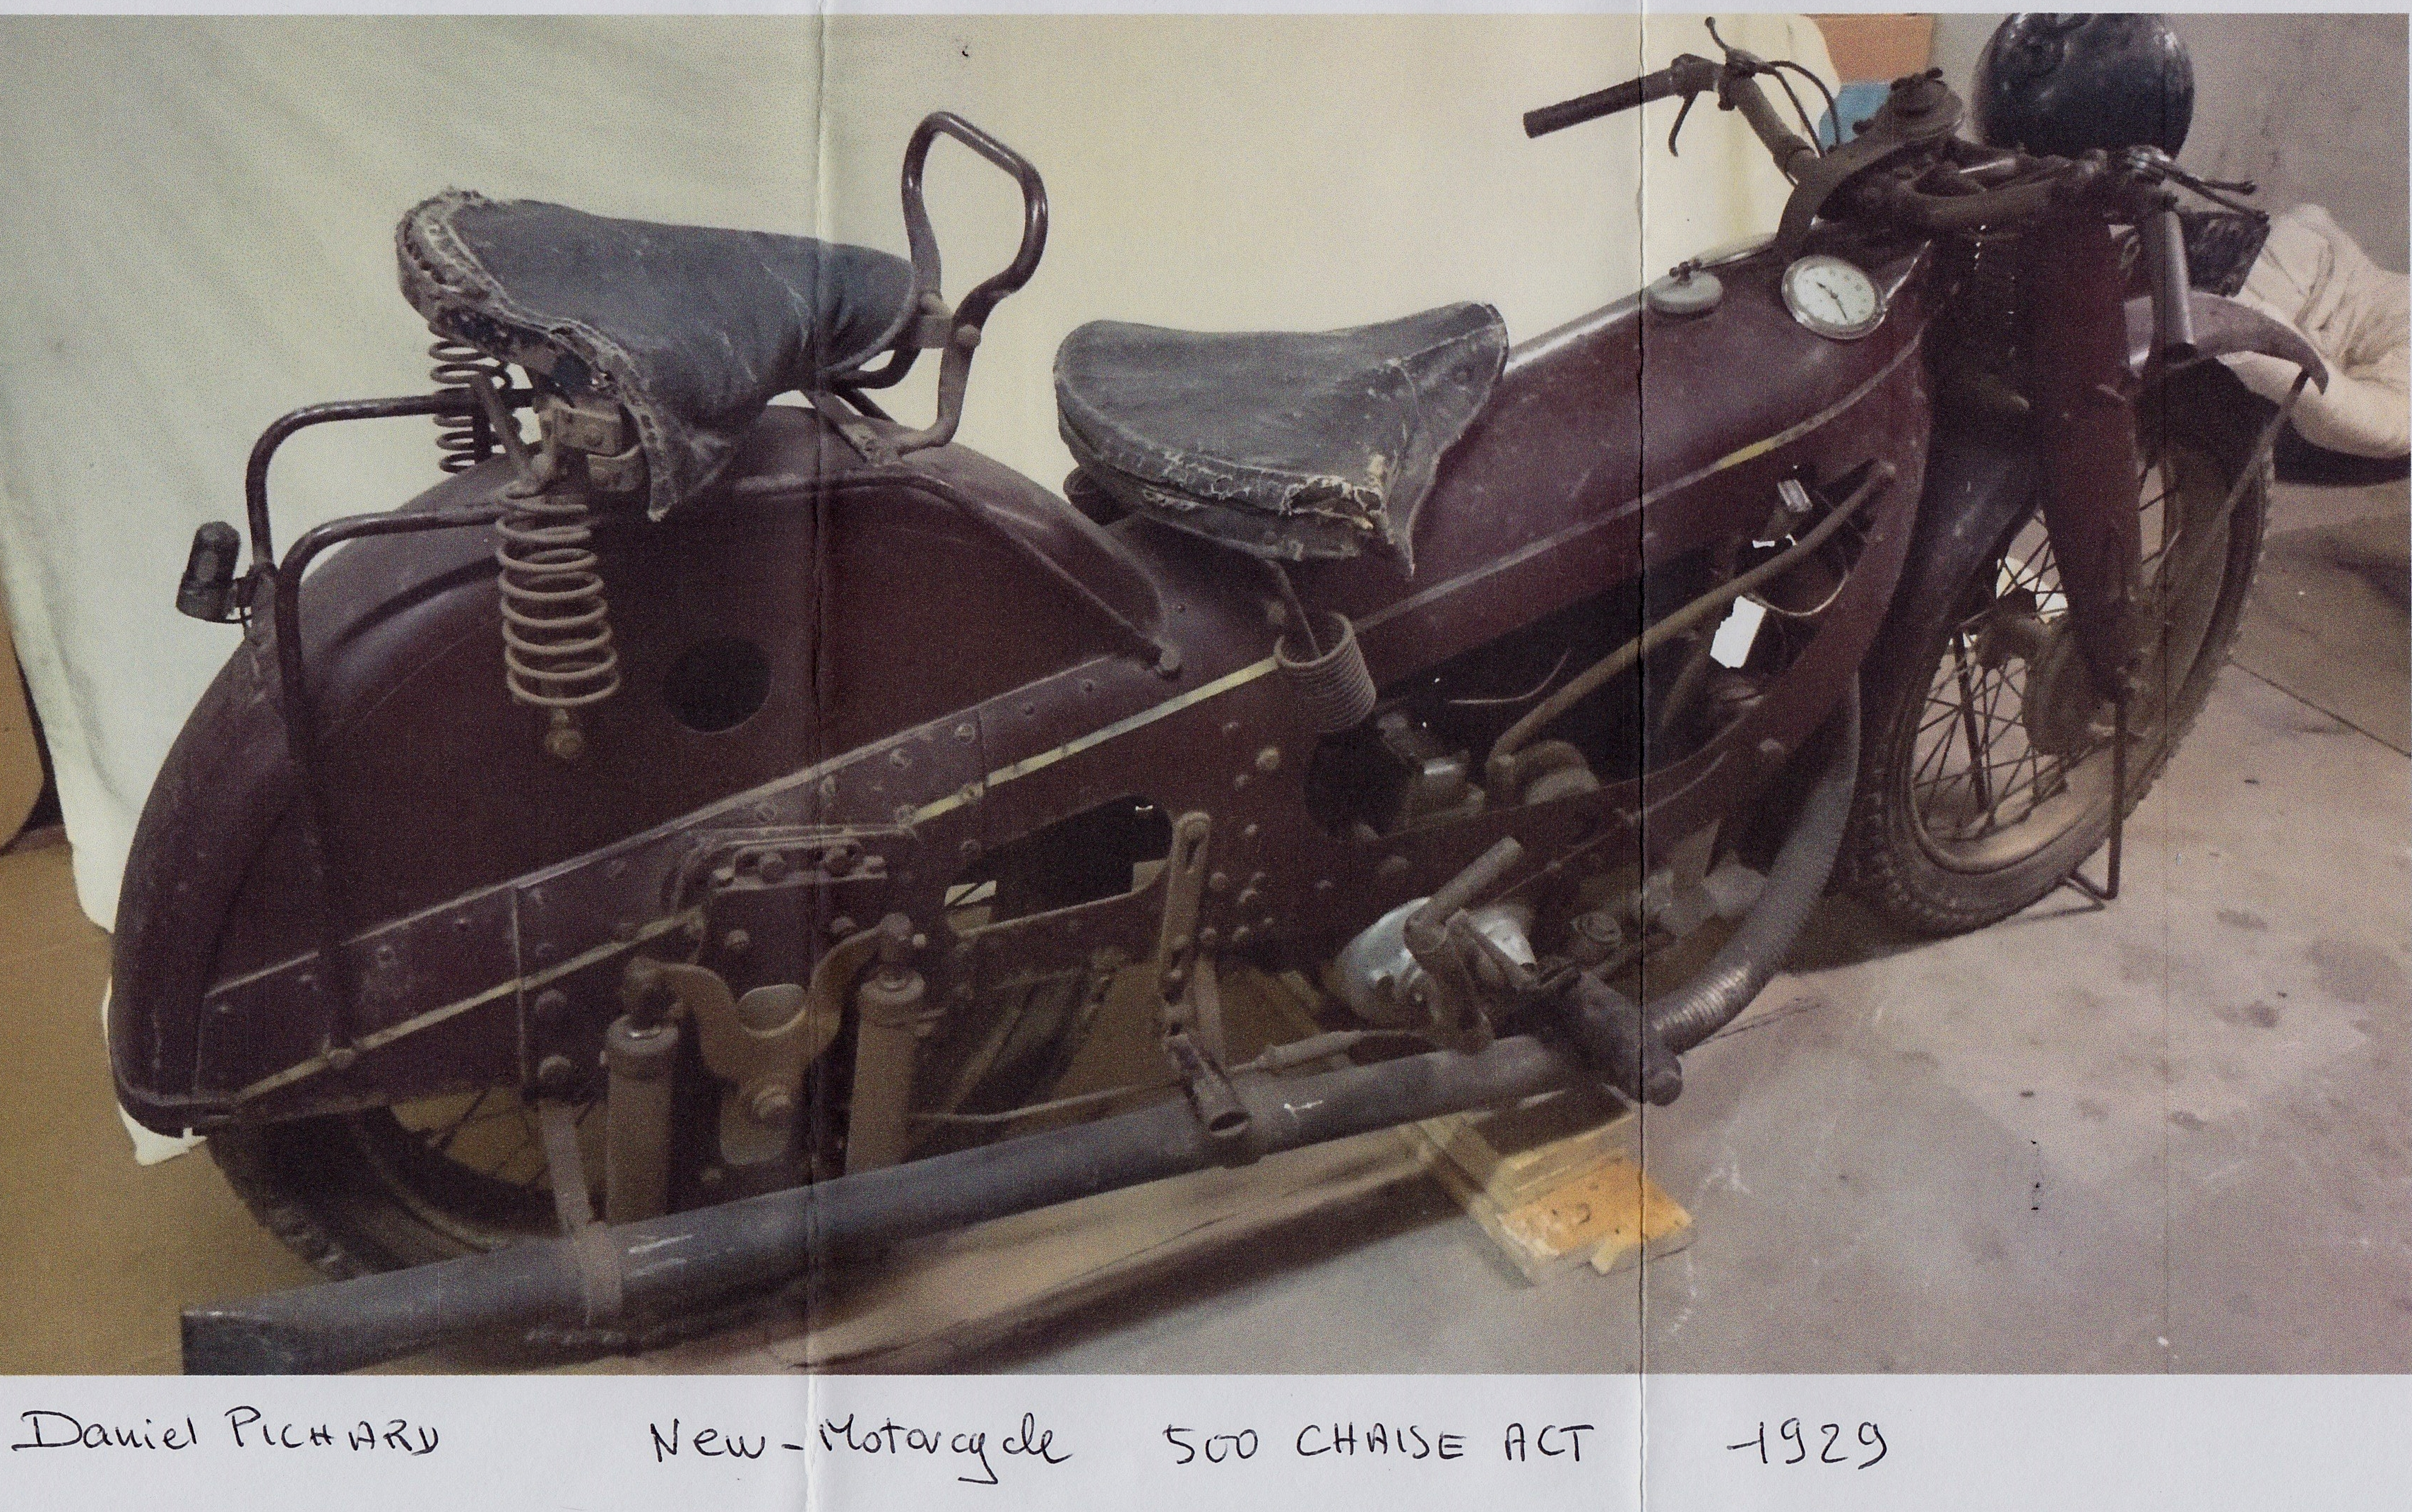 New Motorcycle 500 1929 ( Fr ) Pichard Daniel